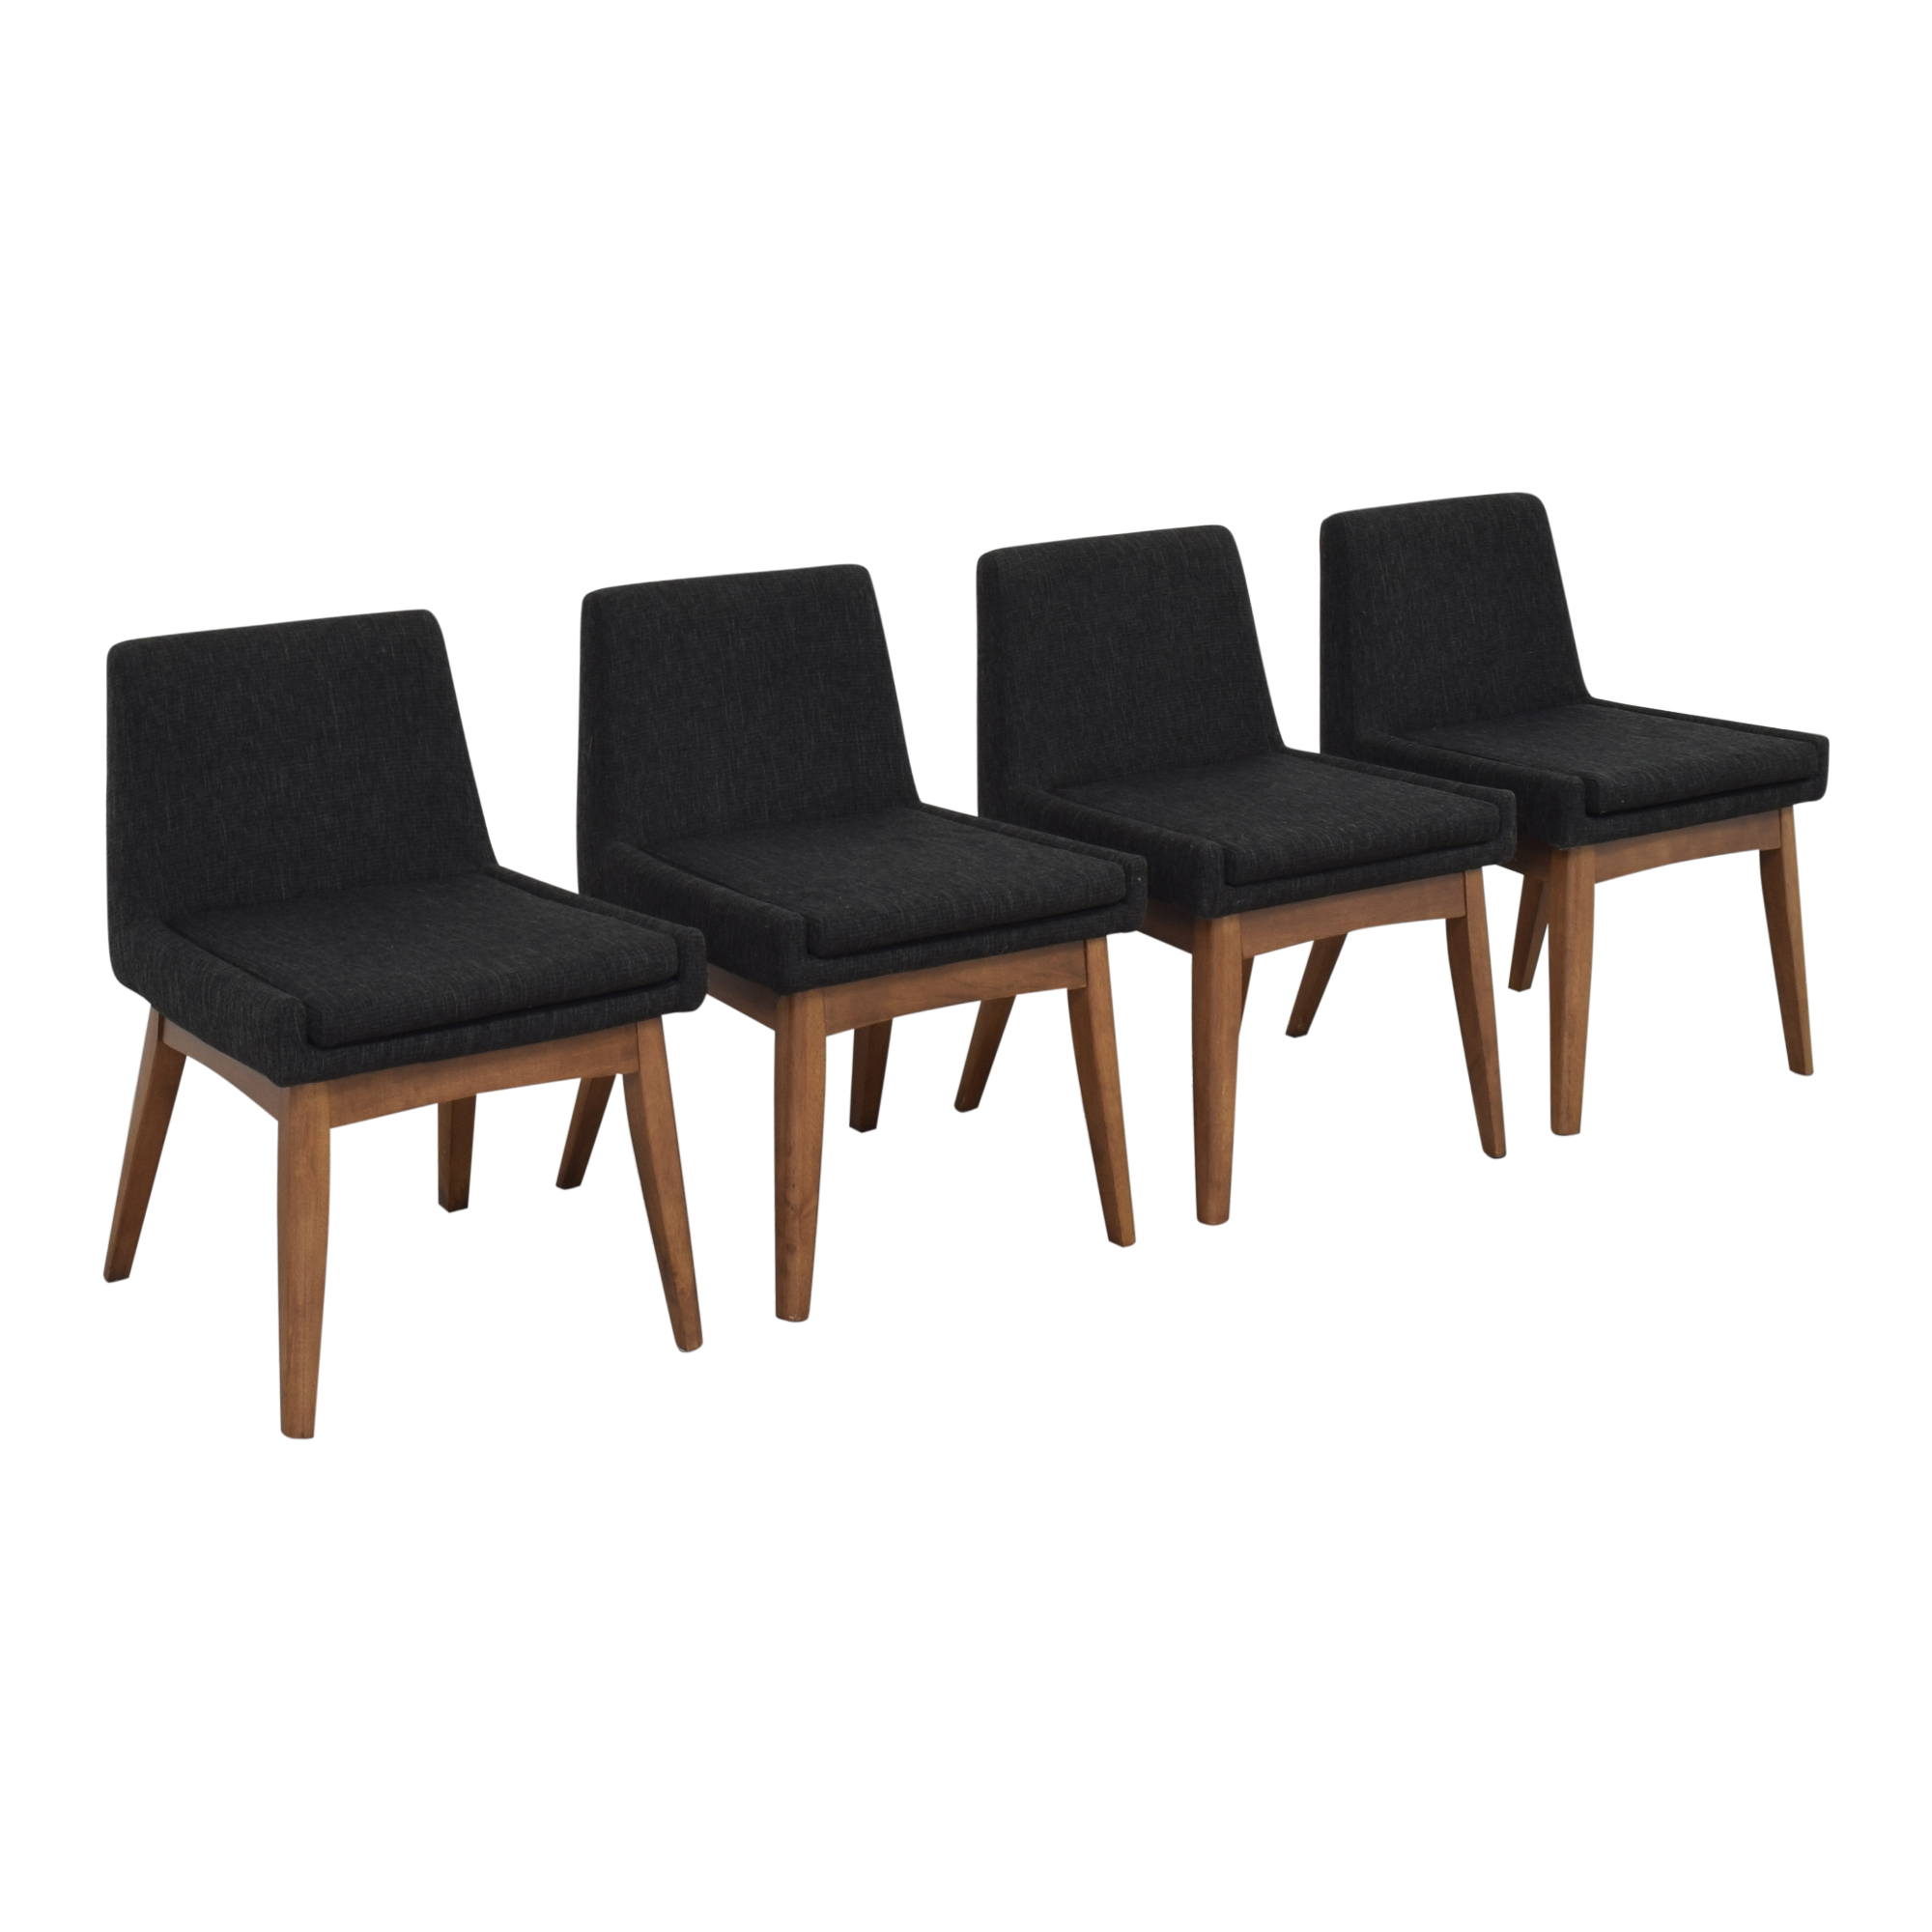 AllModern Hayes Upholstered Dining Chairs / Chairs